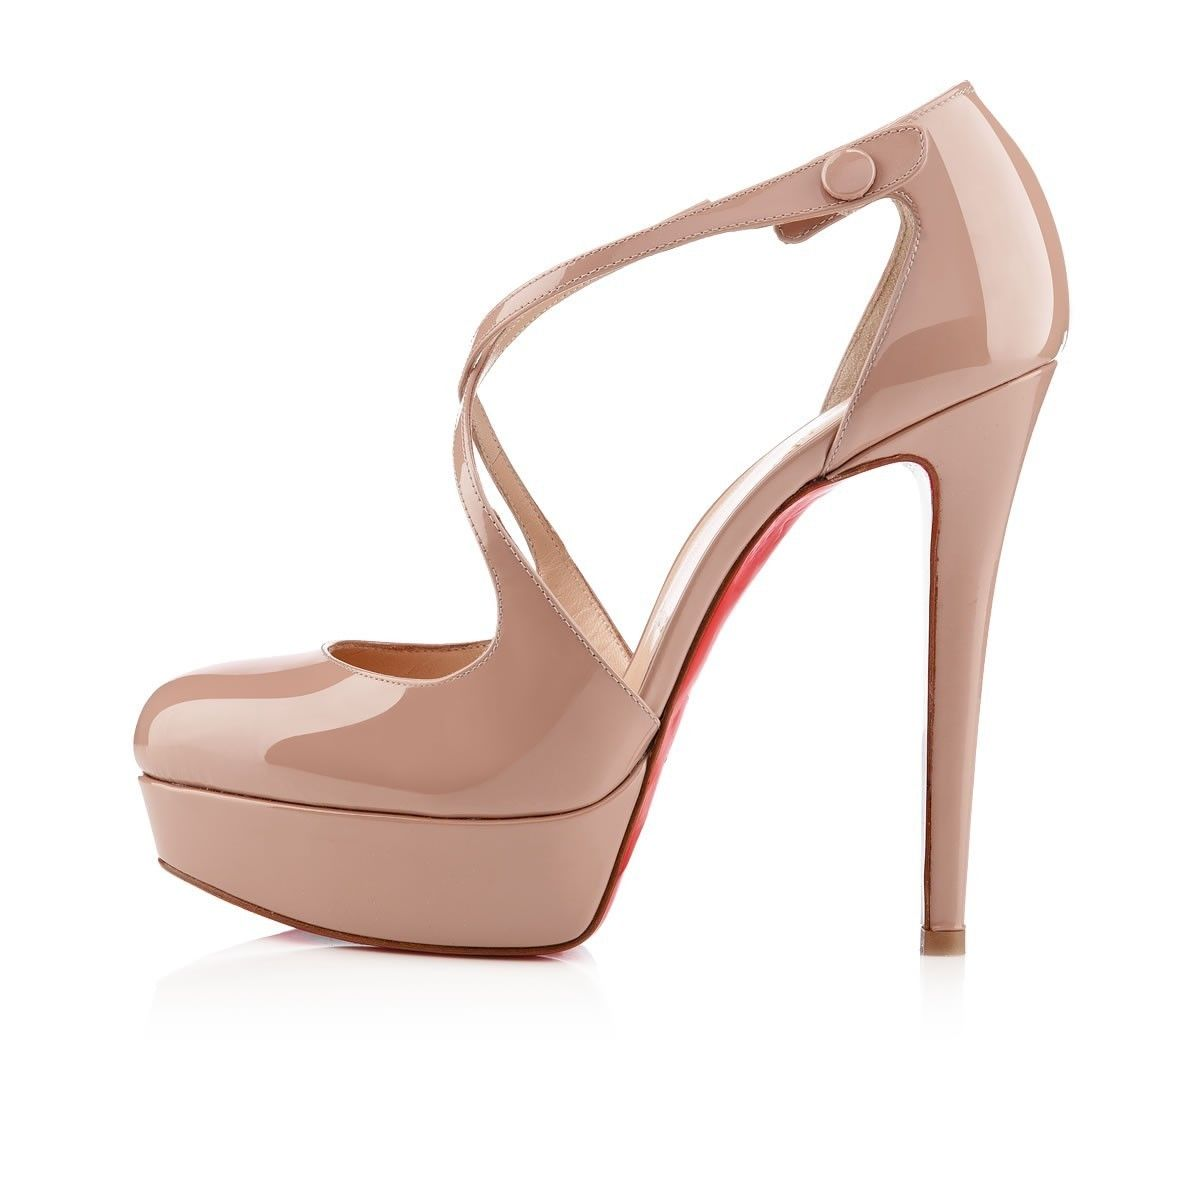 Chaussure Louboutin Pas Cher Pompes Borghese 140mm Nude 12 #shoesforwomen